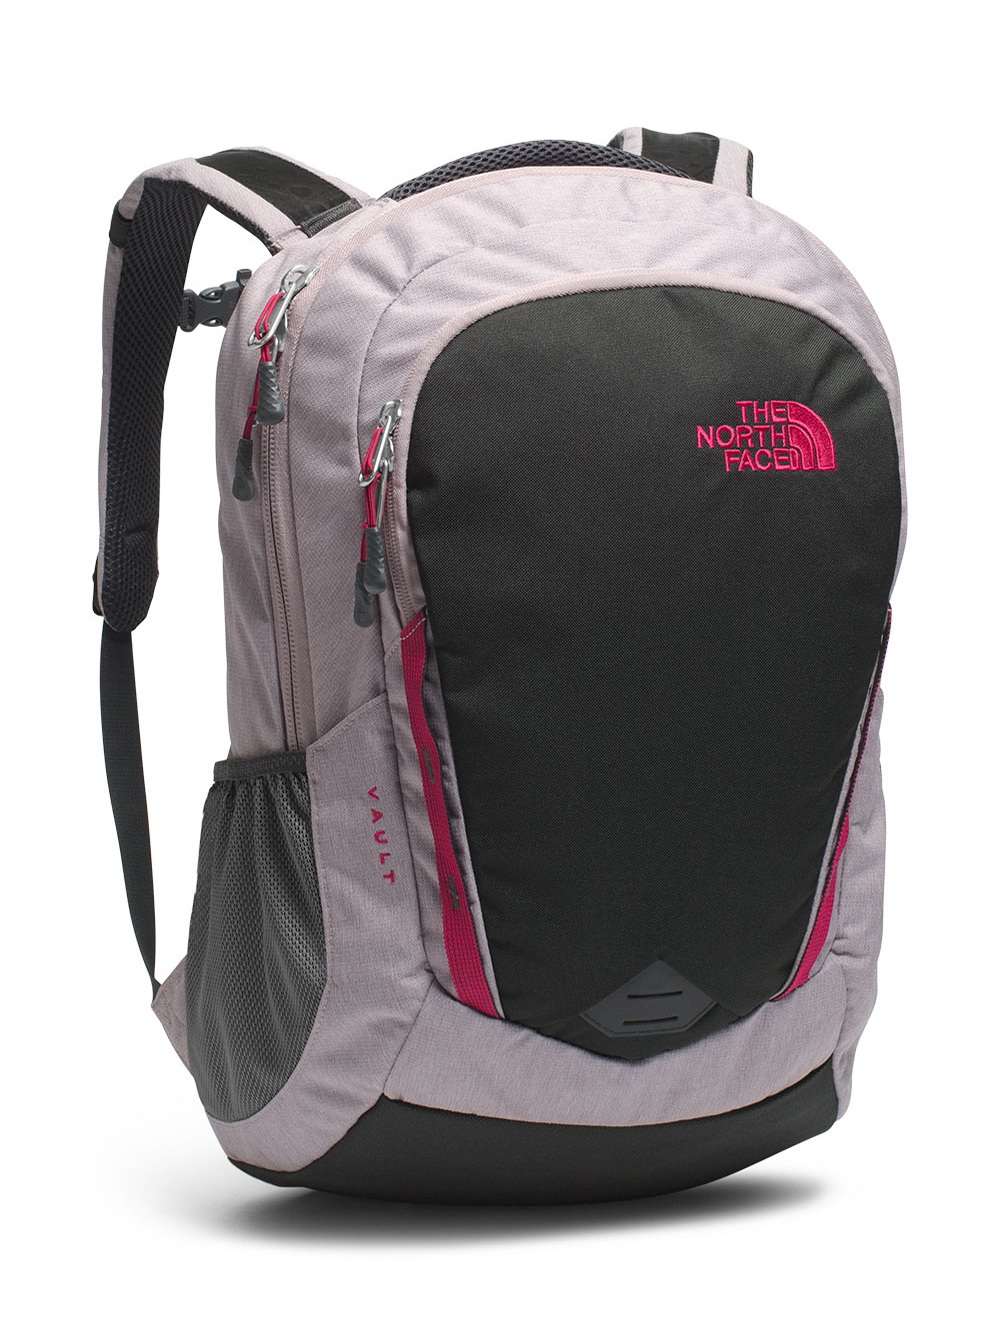 The North Face The Vault Backpack - Women's